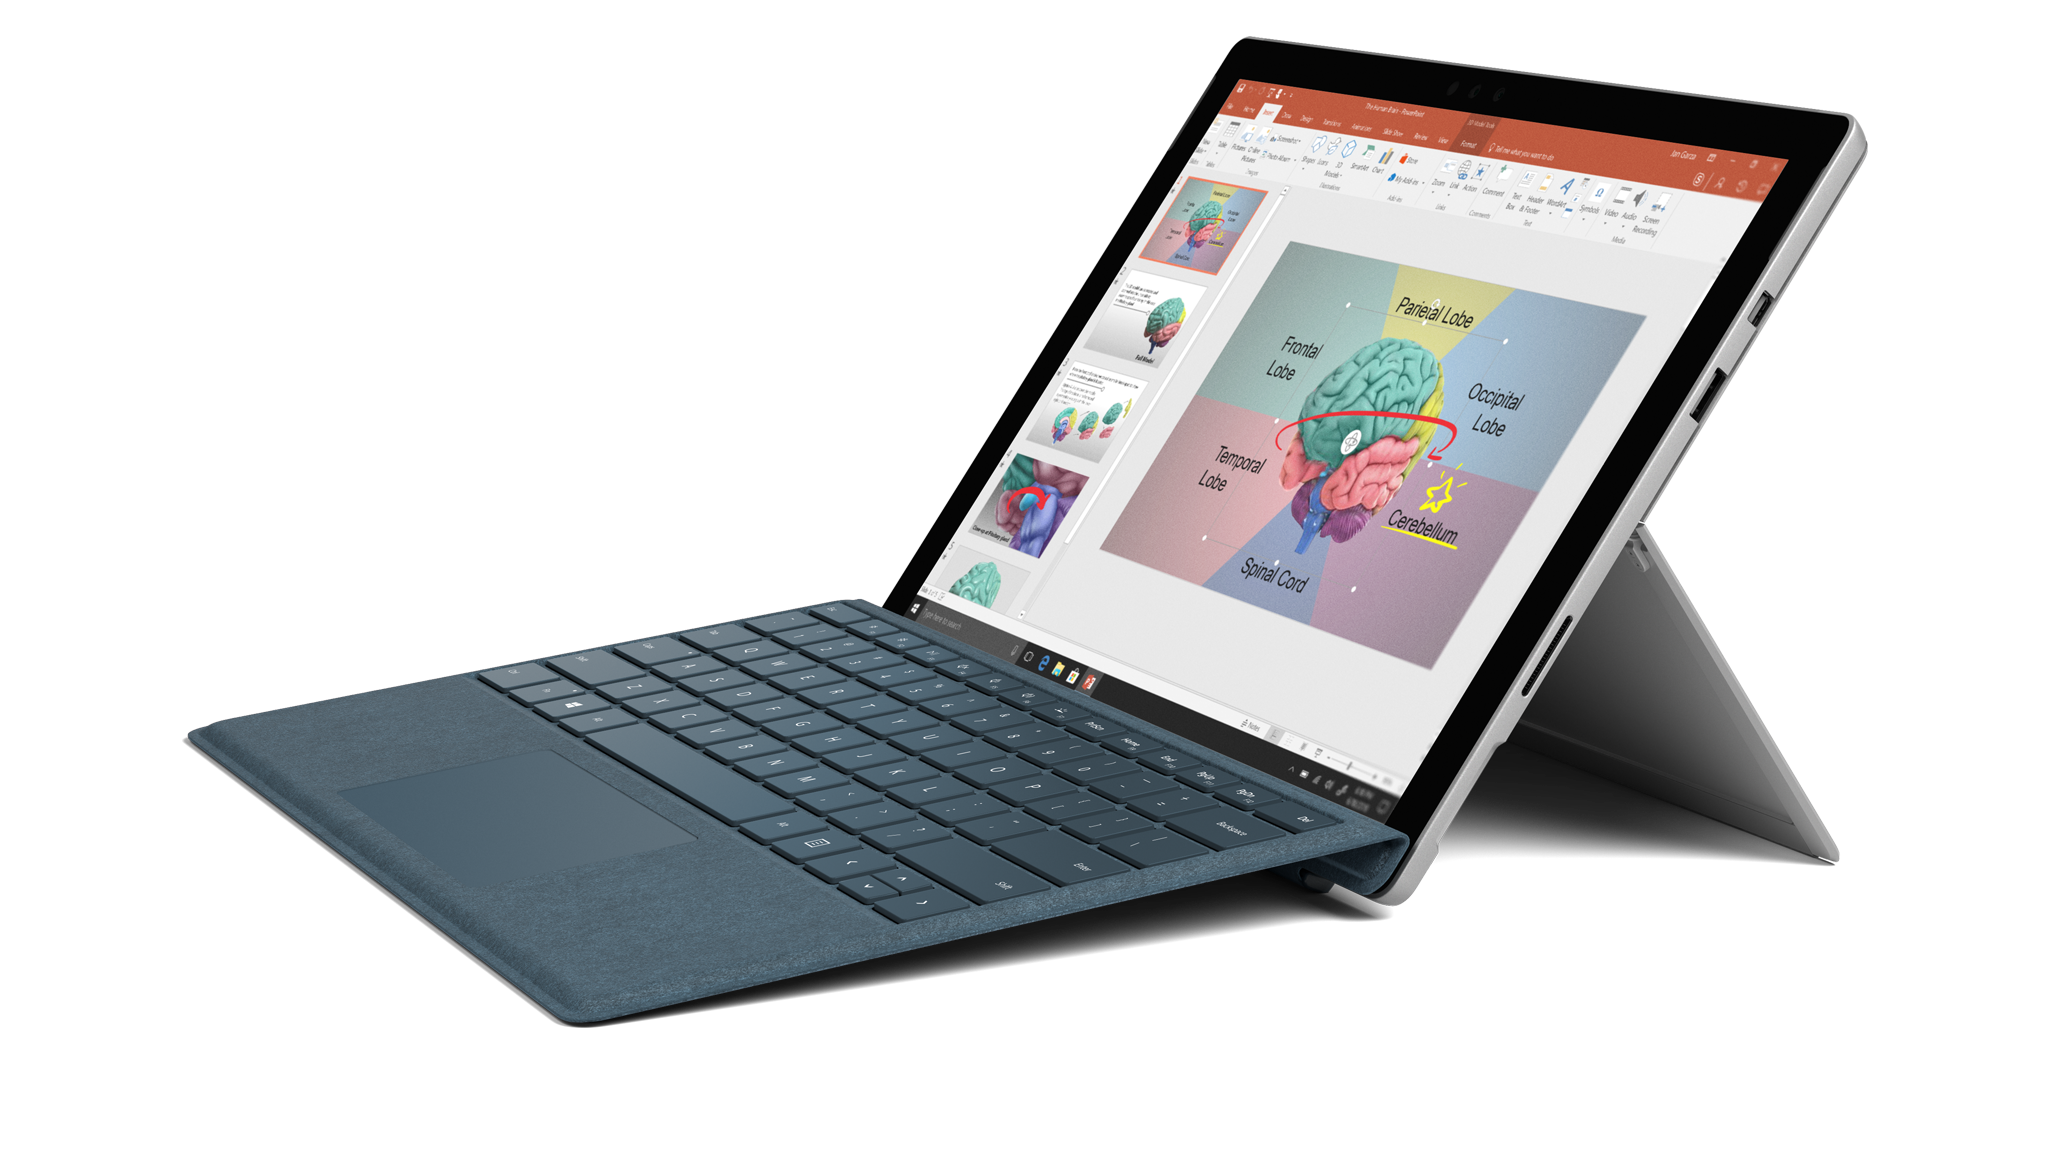 Surface Pro side view